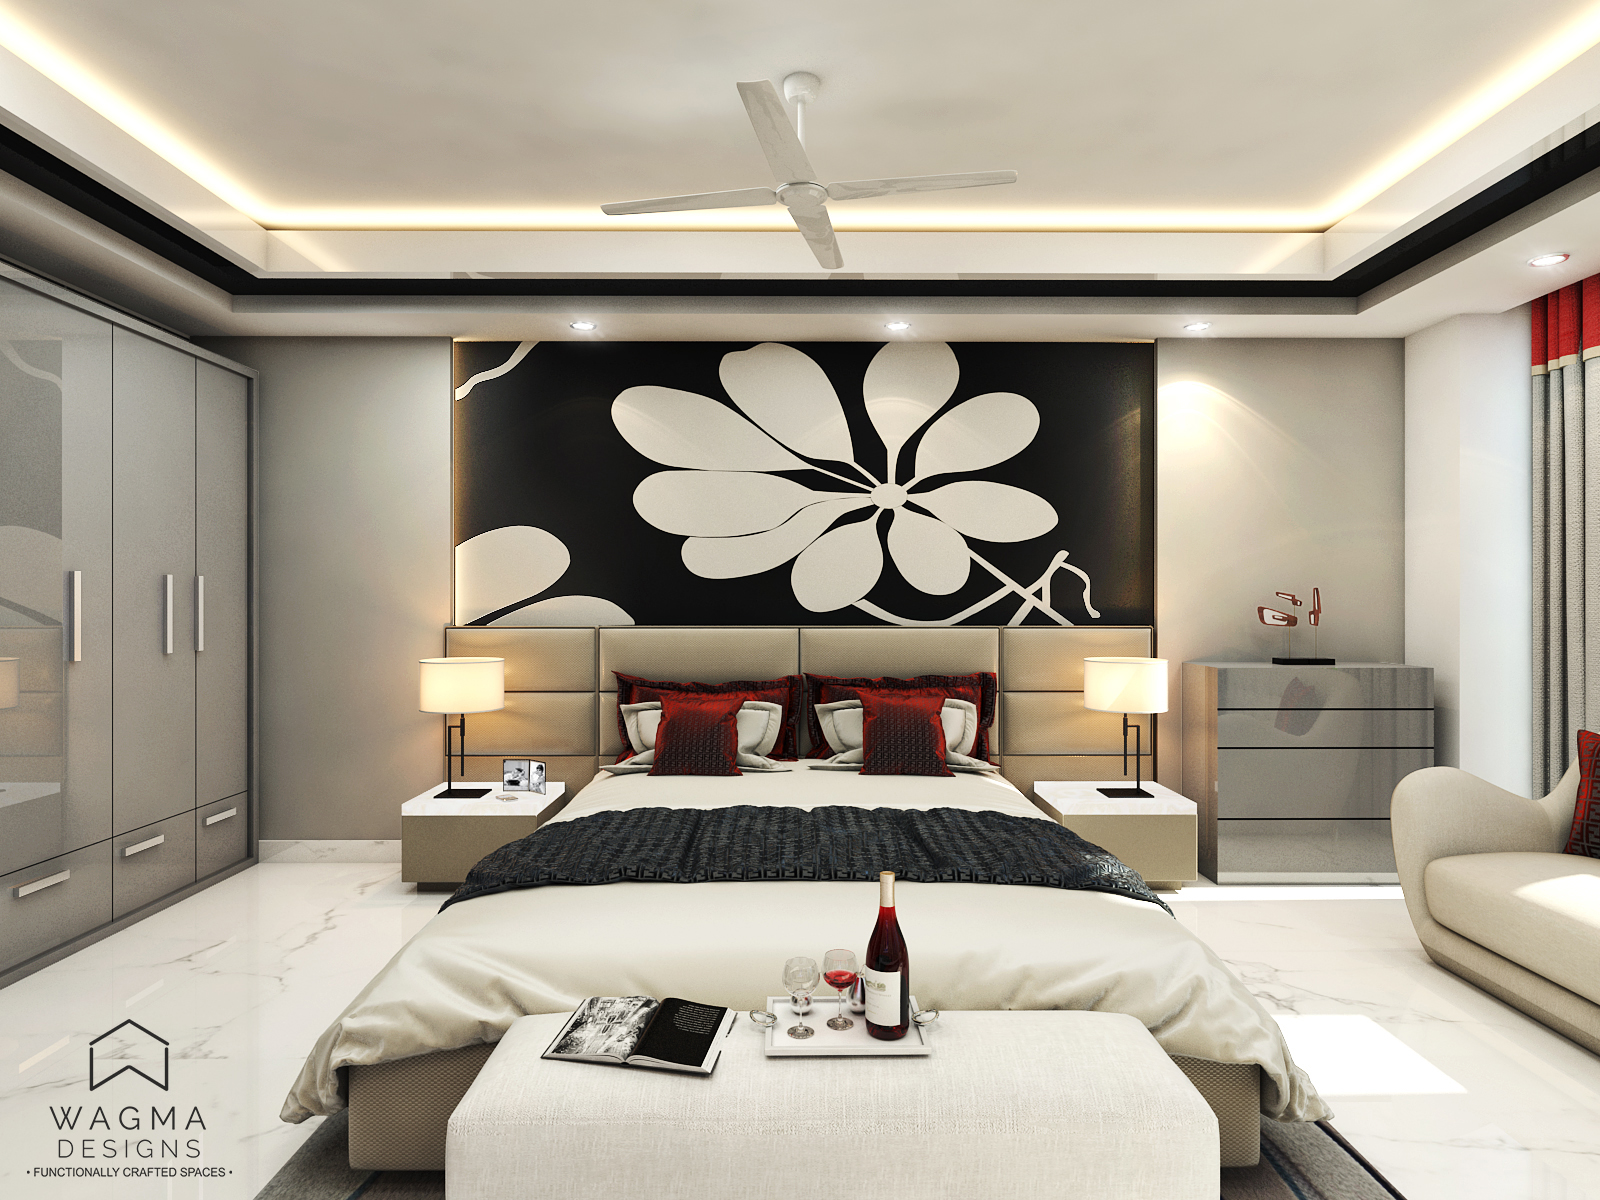 Home Interior Decorators in Gurgaon